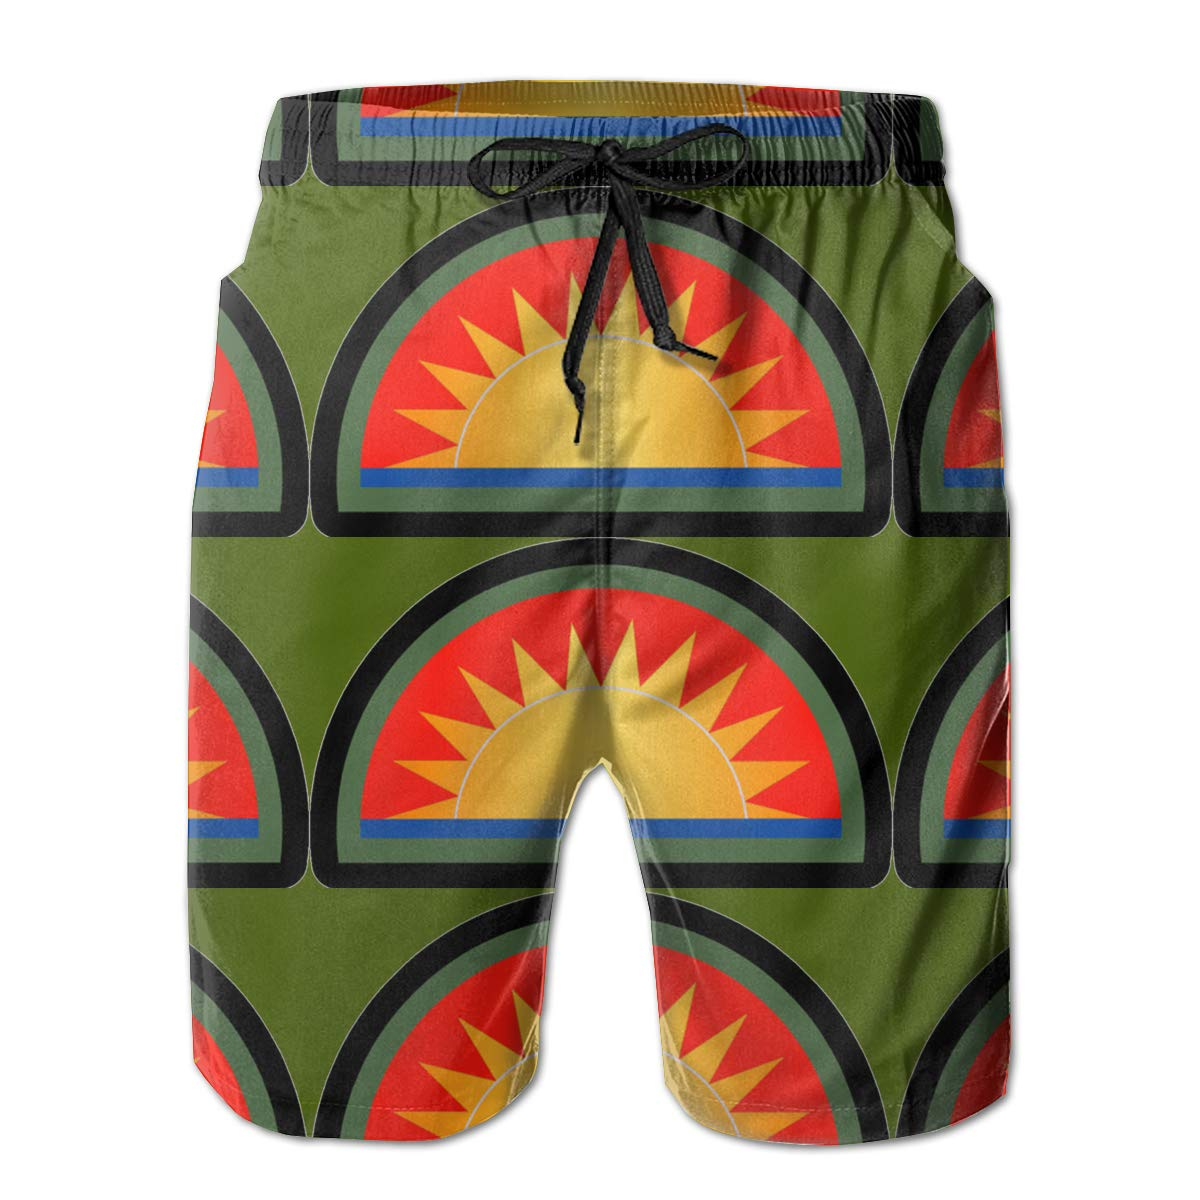 41st Infantry Division Mens Swim Trunks Bathing Suit Beach Shorts